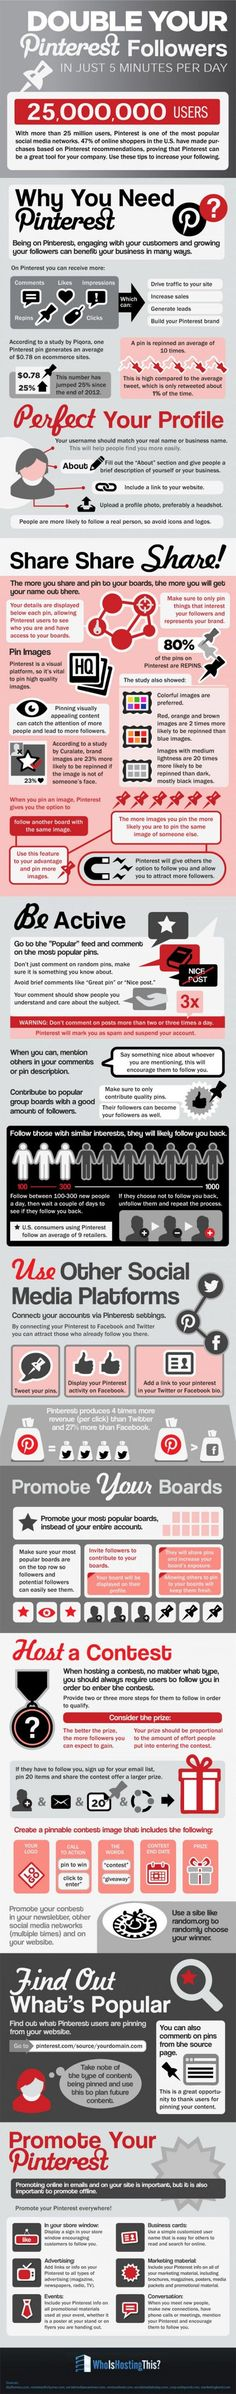 How To Get More Pinterest Followers (Infographic) . #blogging #social #media